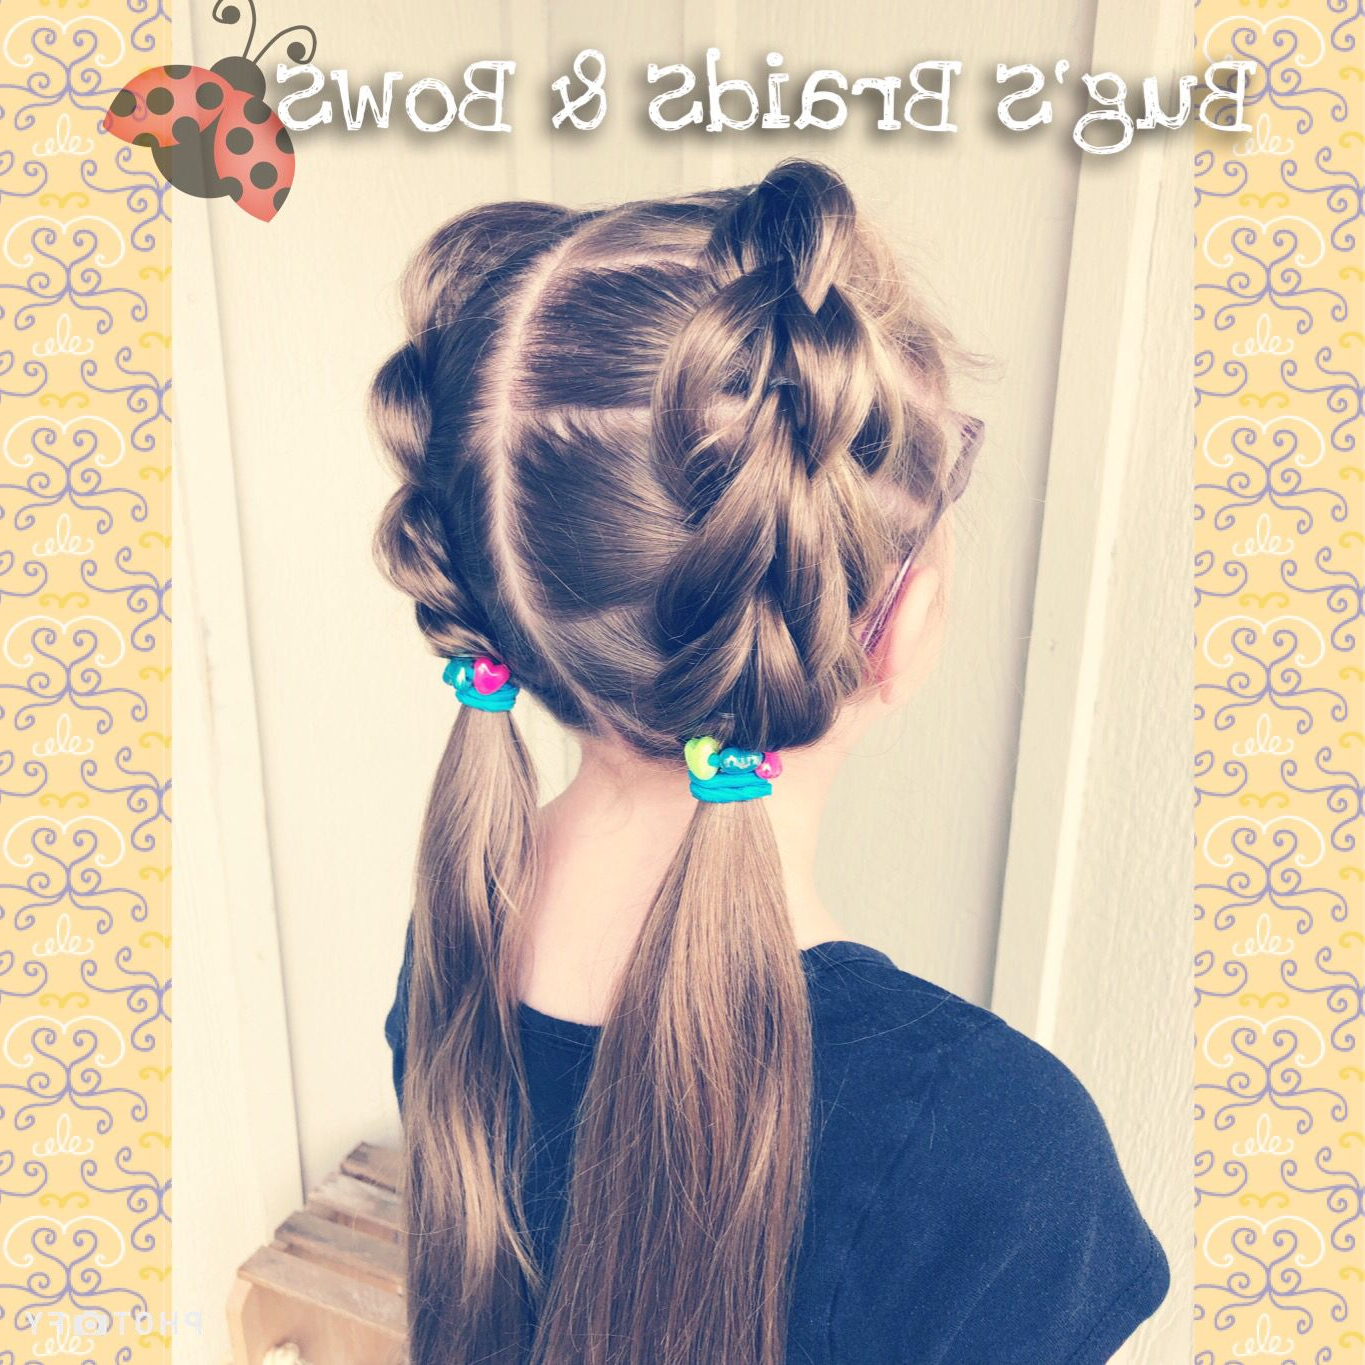 3 Strand Pull Through Braided Pigtails For Our First Day Regarding Famous Three Strand Pigtails Braided Hairstyles (Gallery 15 of 20)